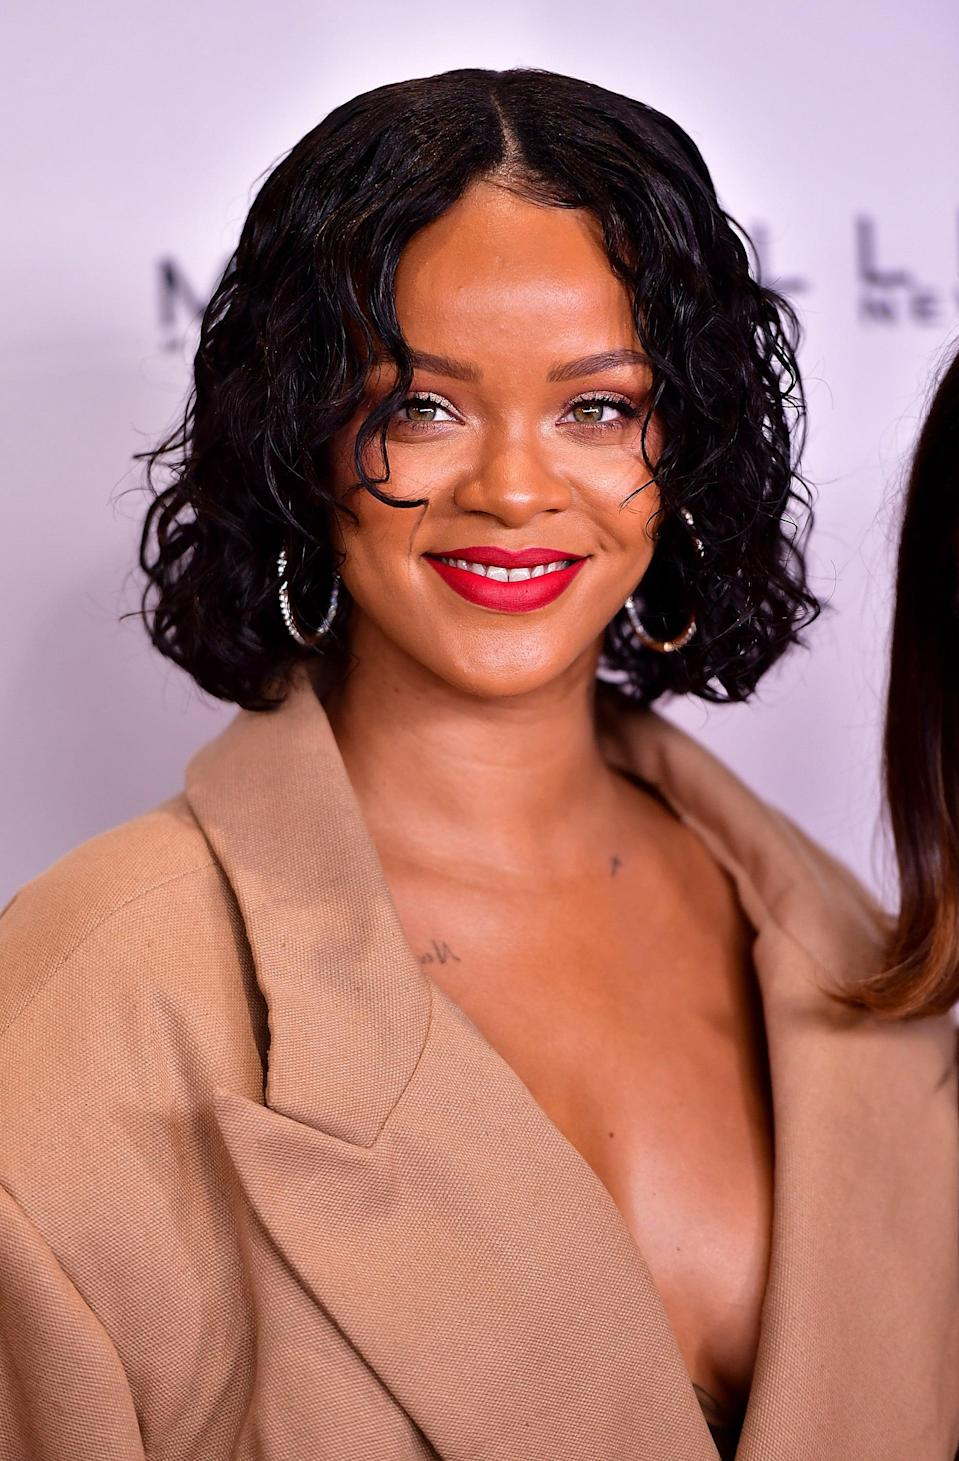 "<p><a class=""link rapid-noclick-resp"" href=""https://www.popsugar.com/Rihanna"" rel=""nofollow noopener"" target=""_blank"" data-ylk=""slk:Rihanna"">Rihanna</a> styled her curly bob to give it the wet look for a New York benefit in 2017.</p>"